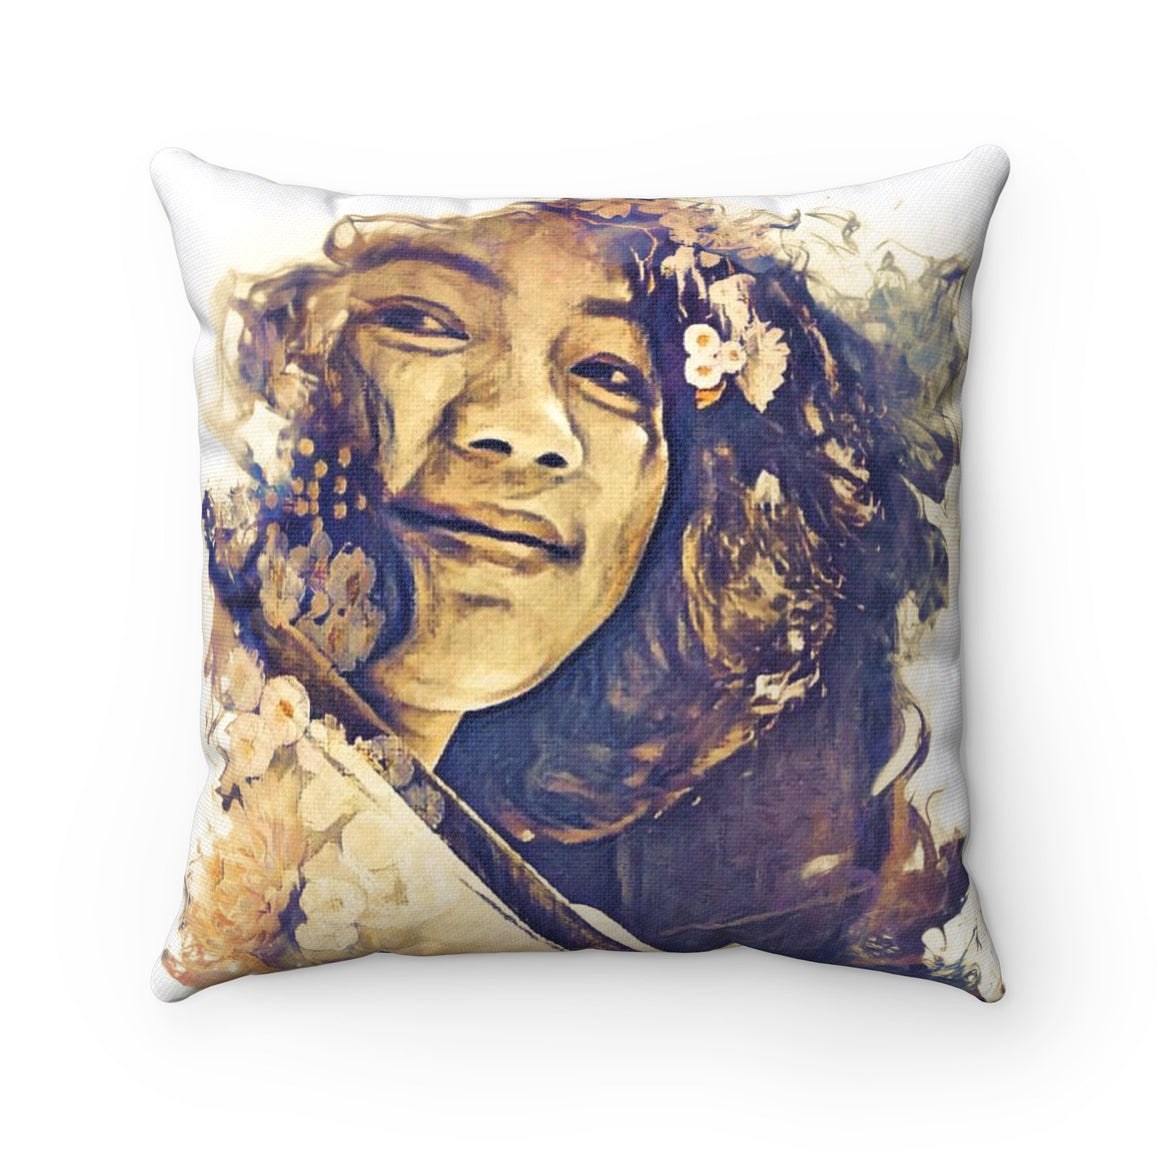 Levi Thang Vintage Face Design U Spun Polyester Square Pillow Case